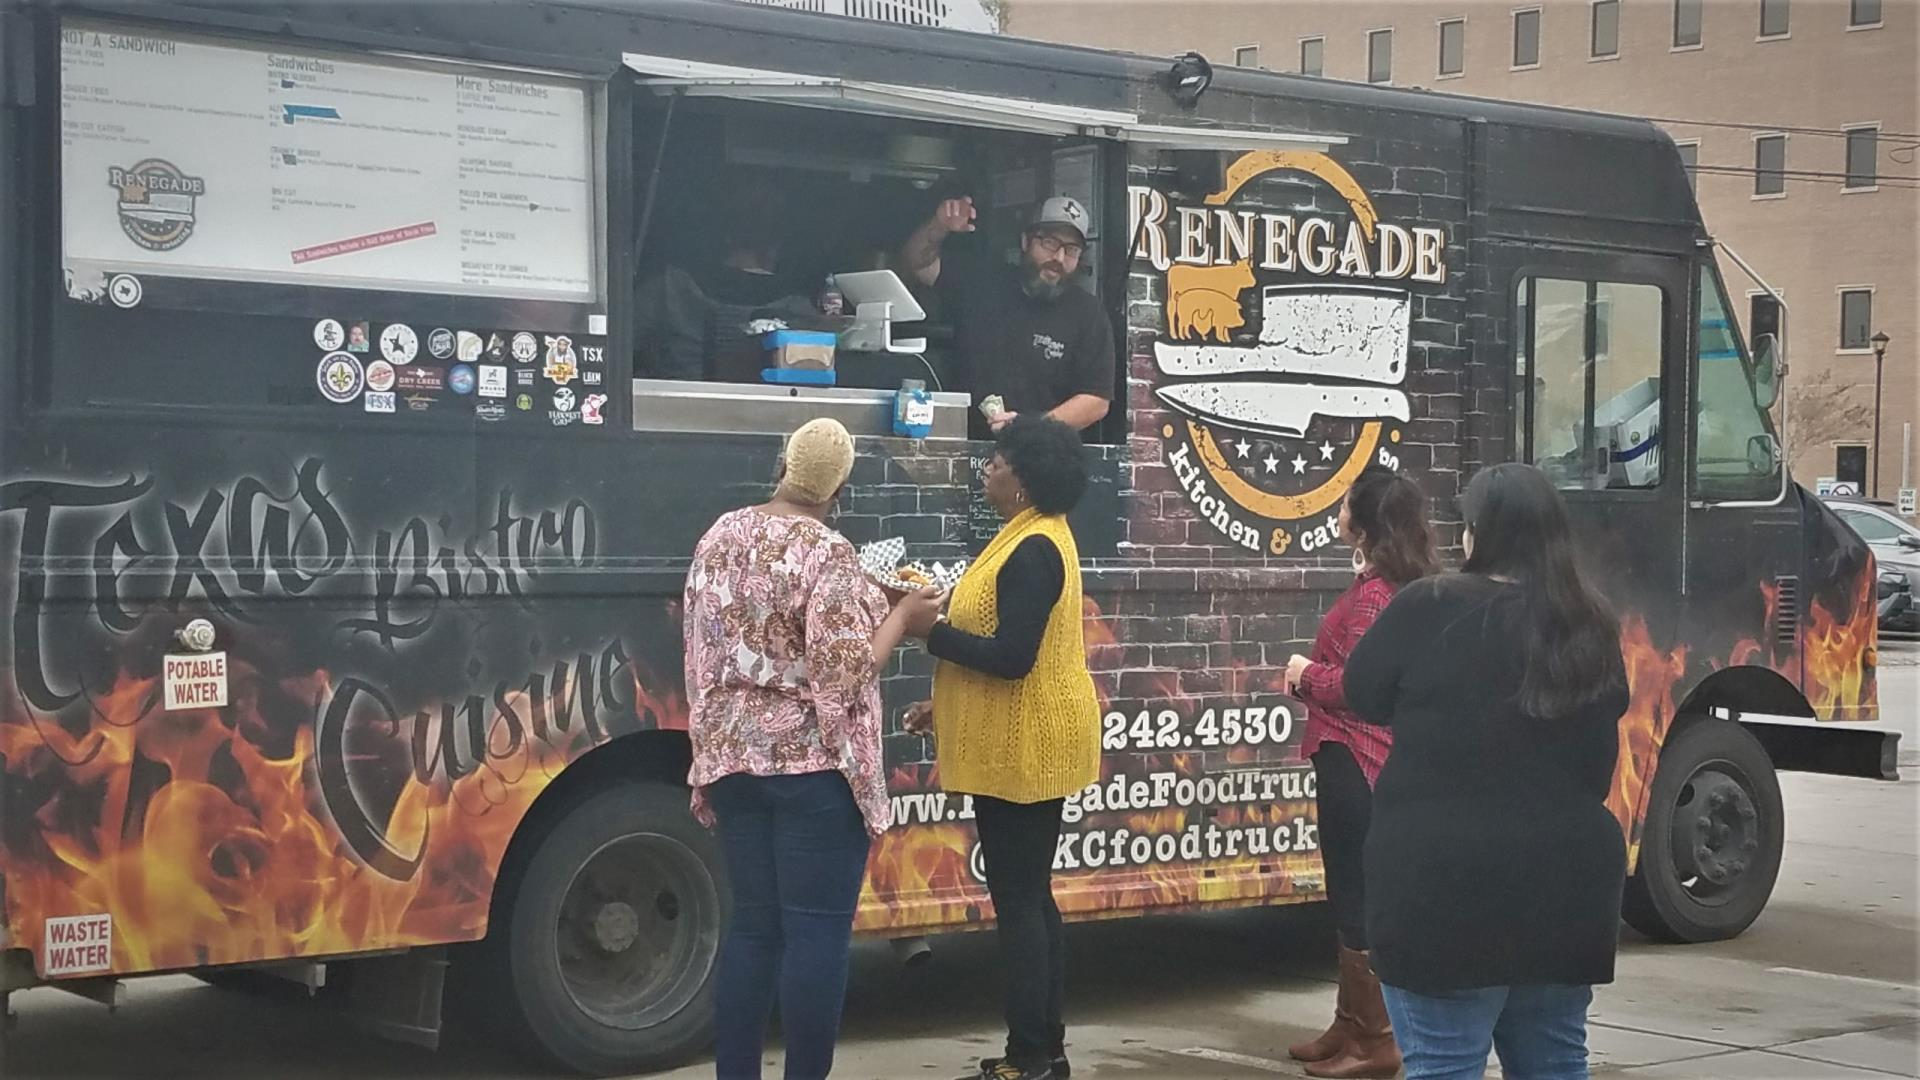 Renegade Kitchen Truck March 2019